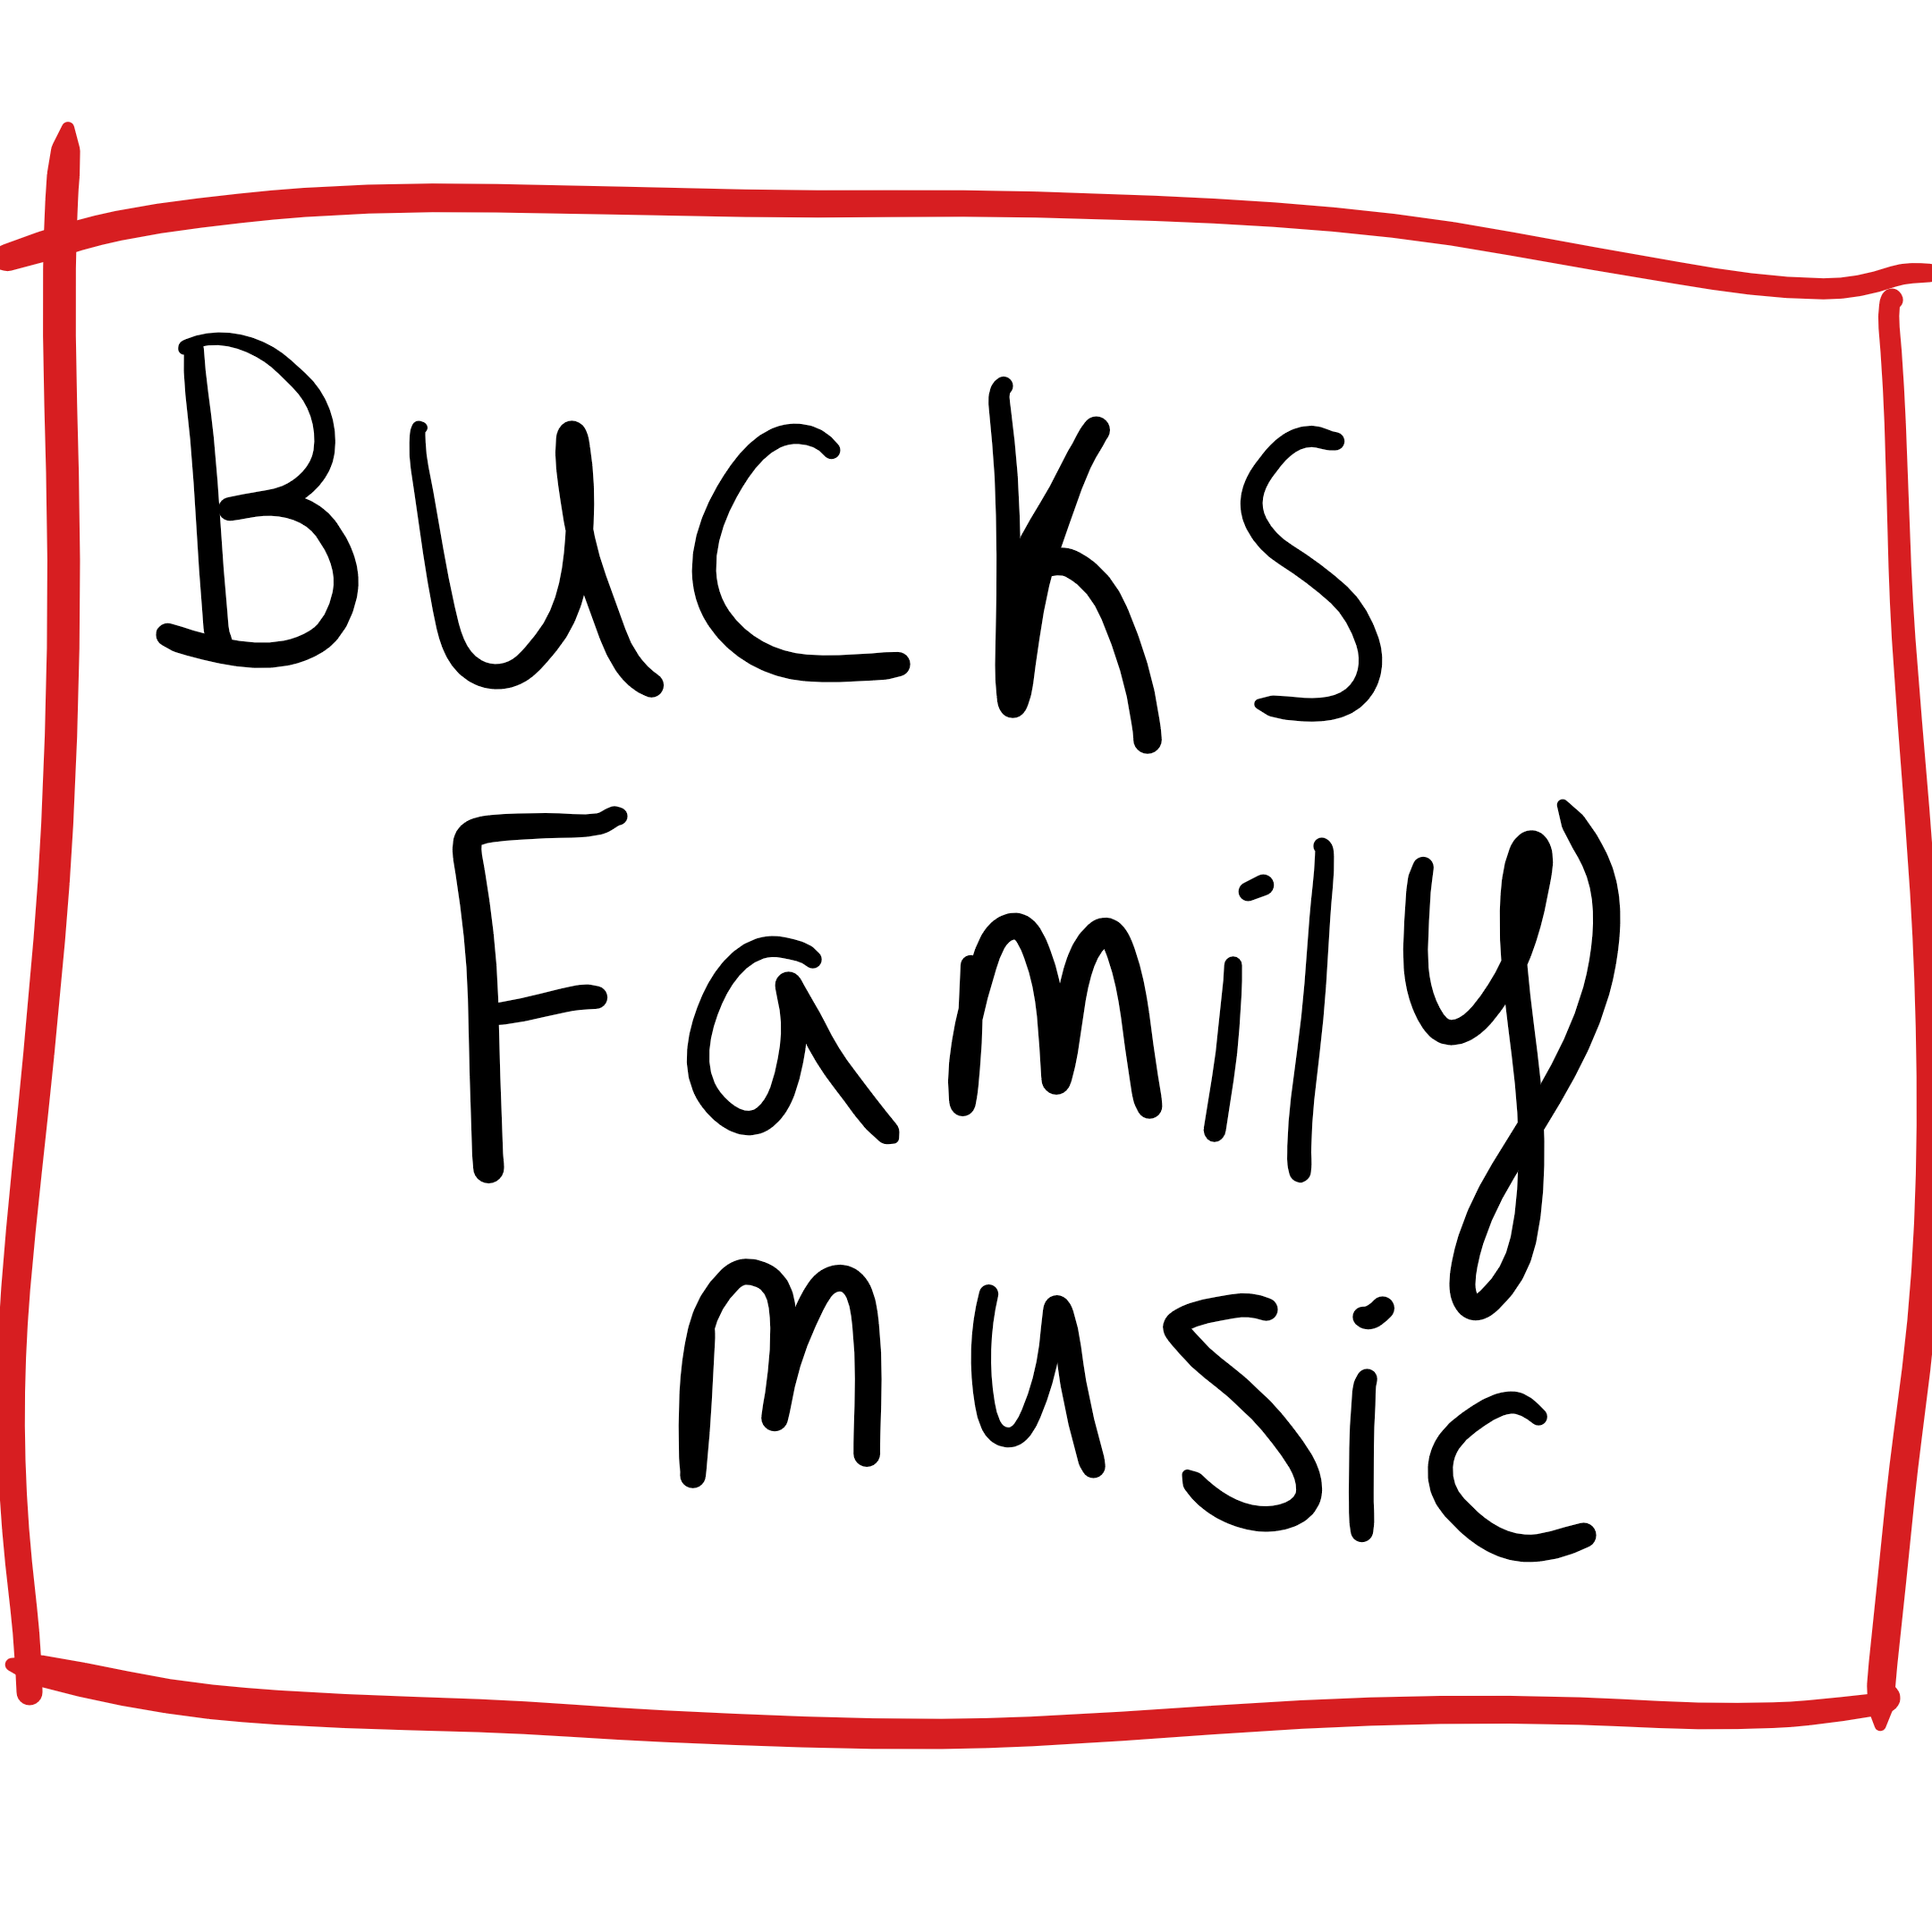 Bucks Family Music